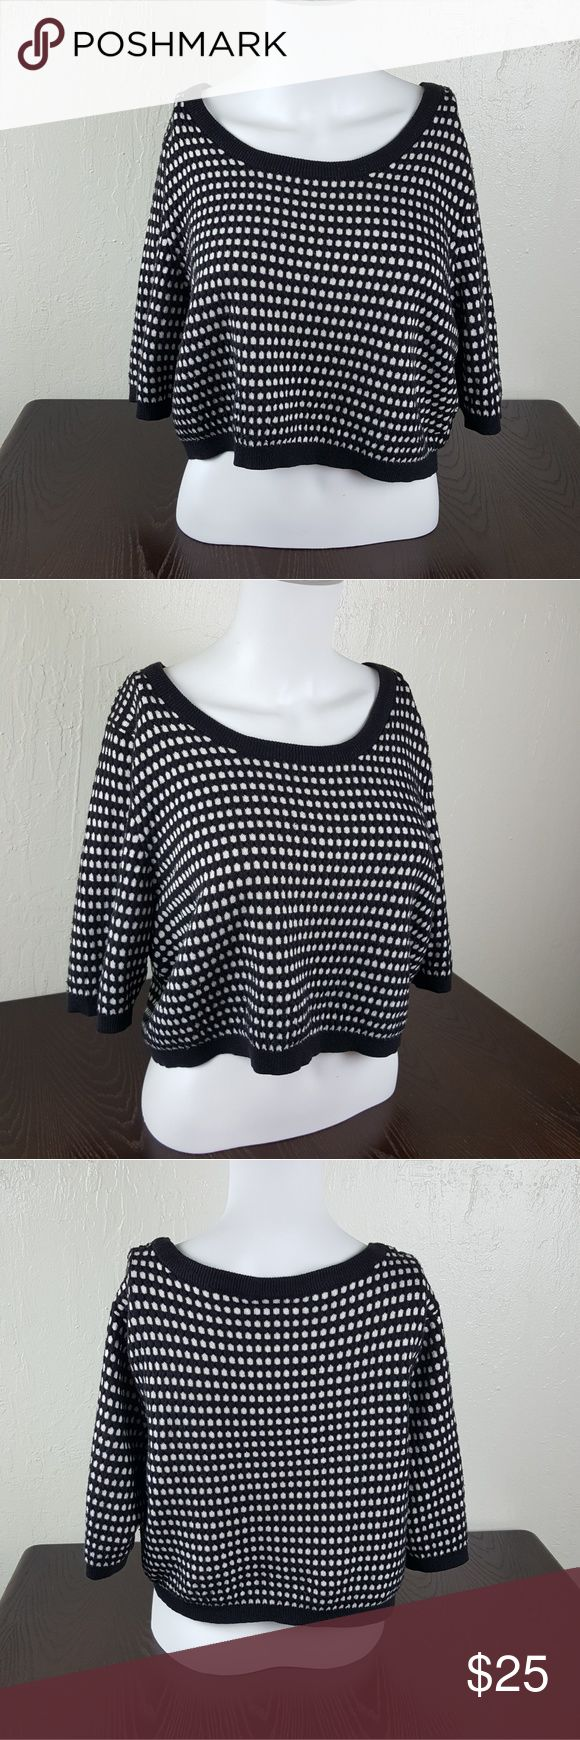 Torrid Black & White Plus Size Crop Top Torrid Black & White Plus Size Crop Top  Size- 2 (please check torrid sizes. This is a plus size item!)  Conditon- good. No rips or staining  This top is big on my mannequin so i apologize if it looks slightly off!  Super cute! torrid Tops Crop Tops